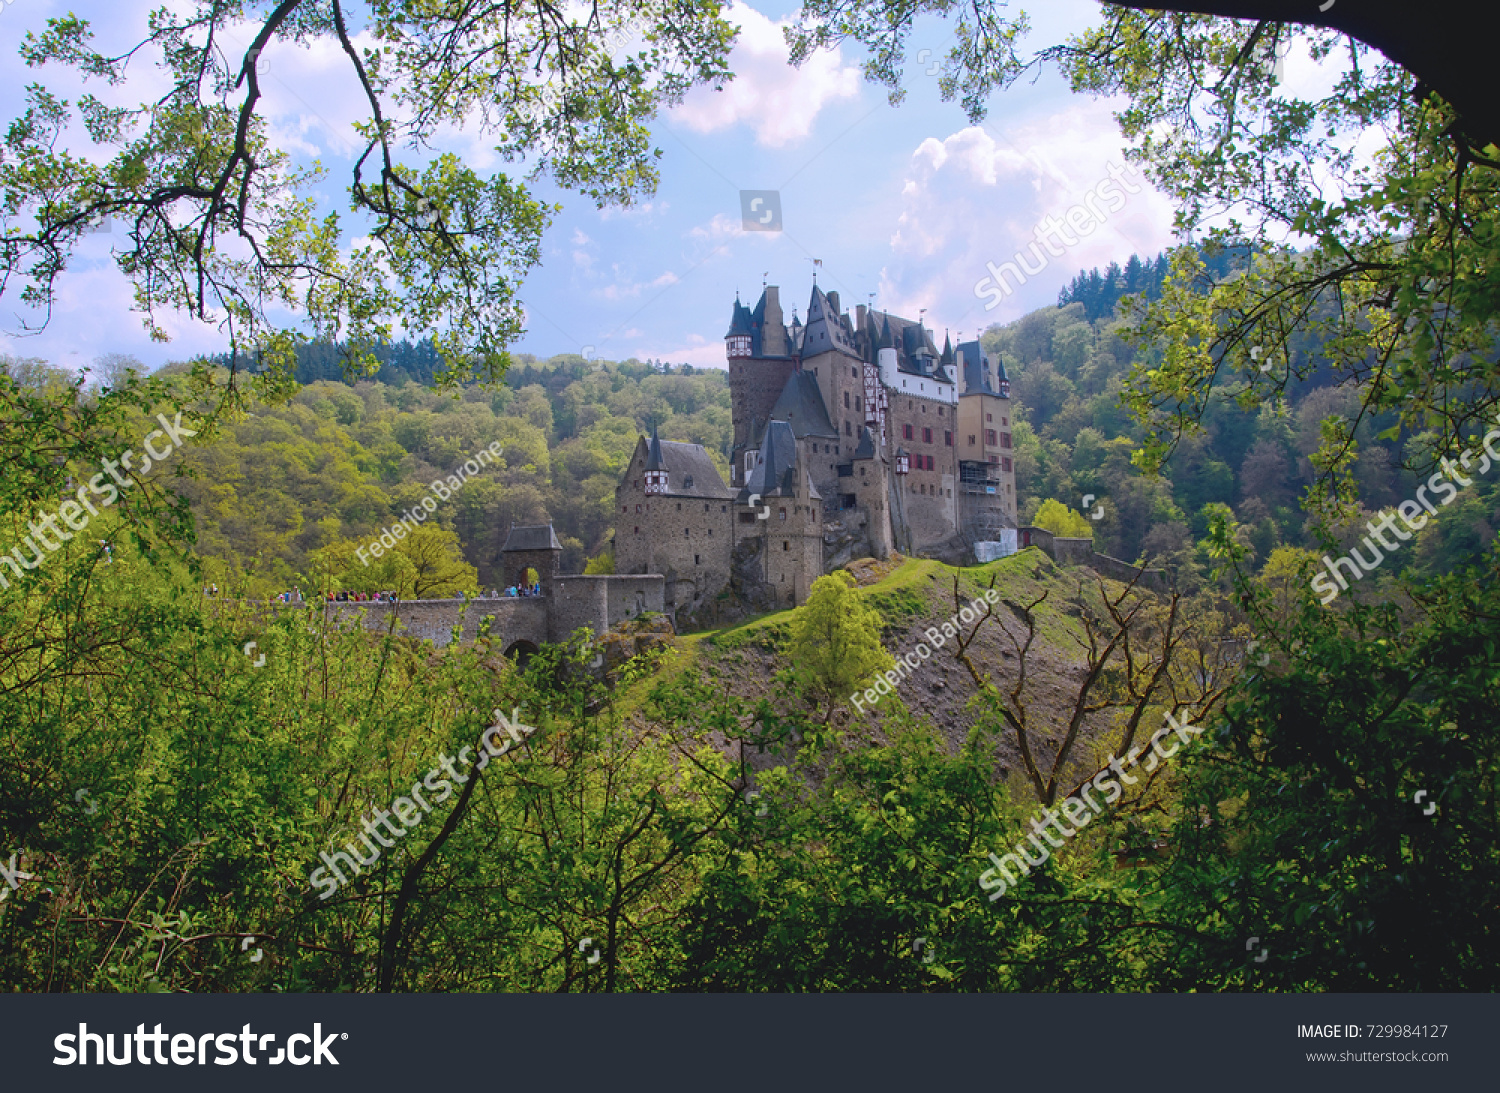 stock-photo-eltz-castle-in-rhineland-pal